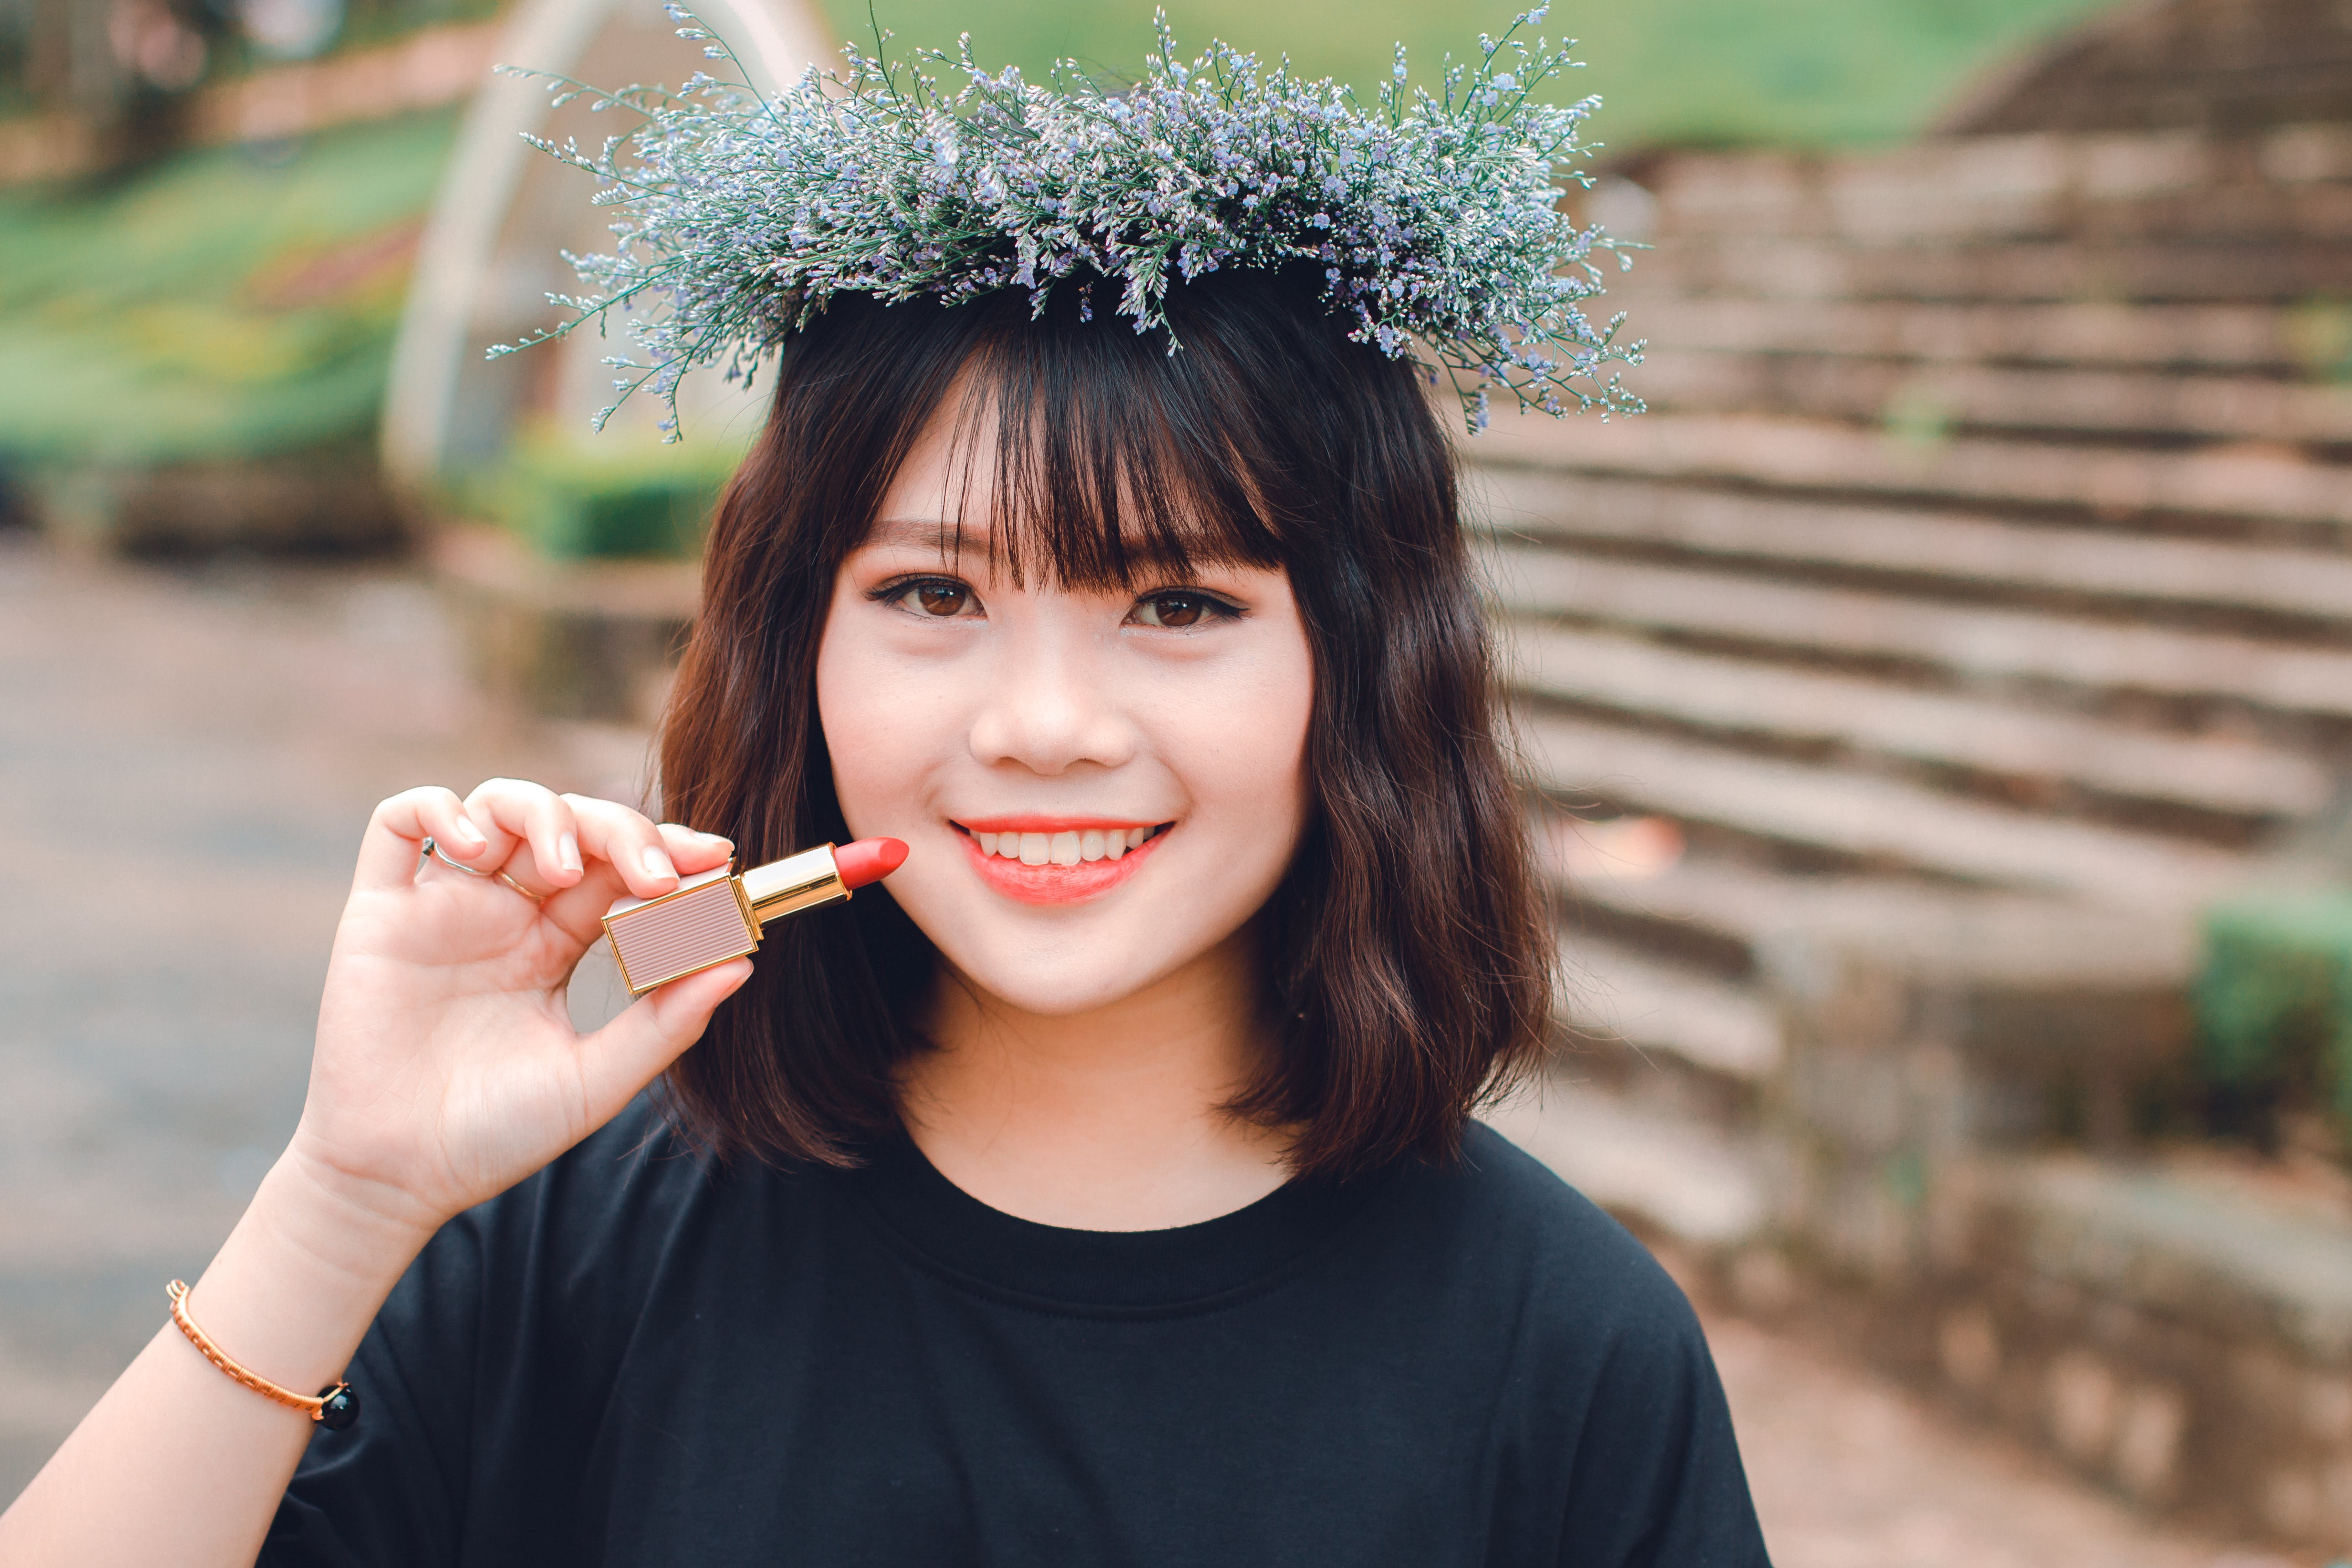 Woman Smiling While Holding Lipstick